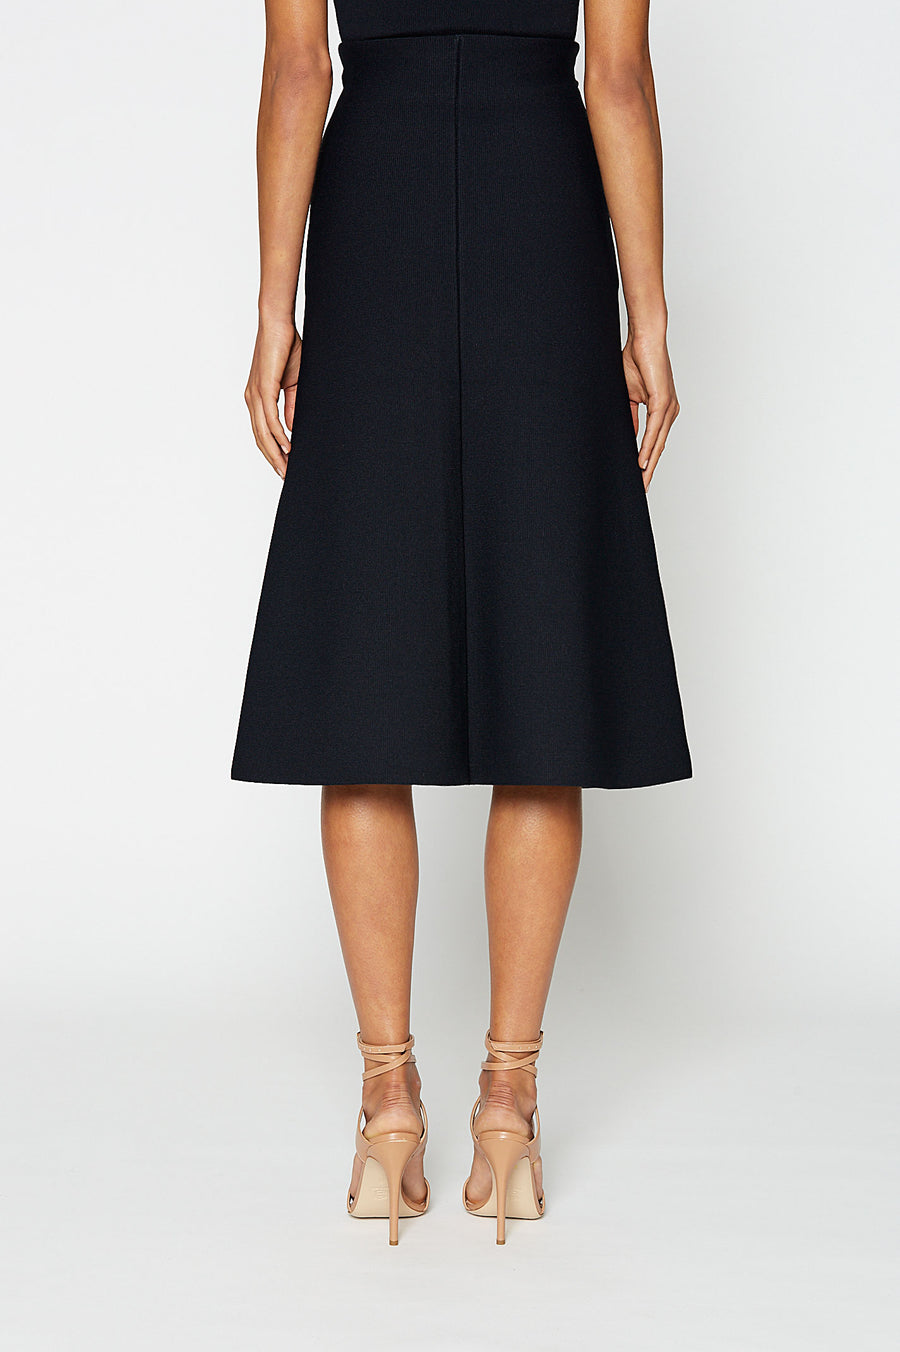 Crepe Knit A-Line Skirt, fitted at the waist, A-line body, sits below knee, Color Navy